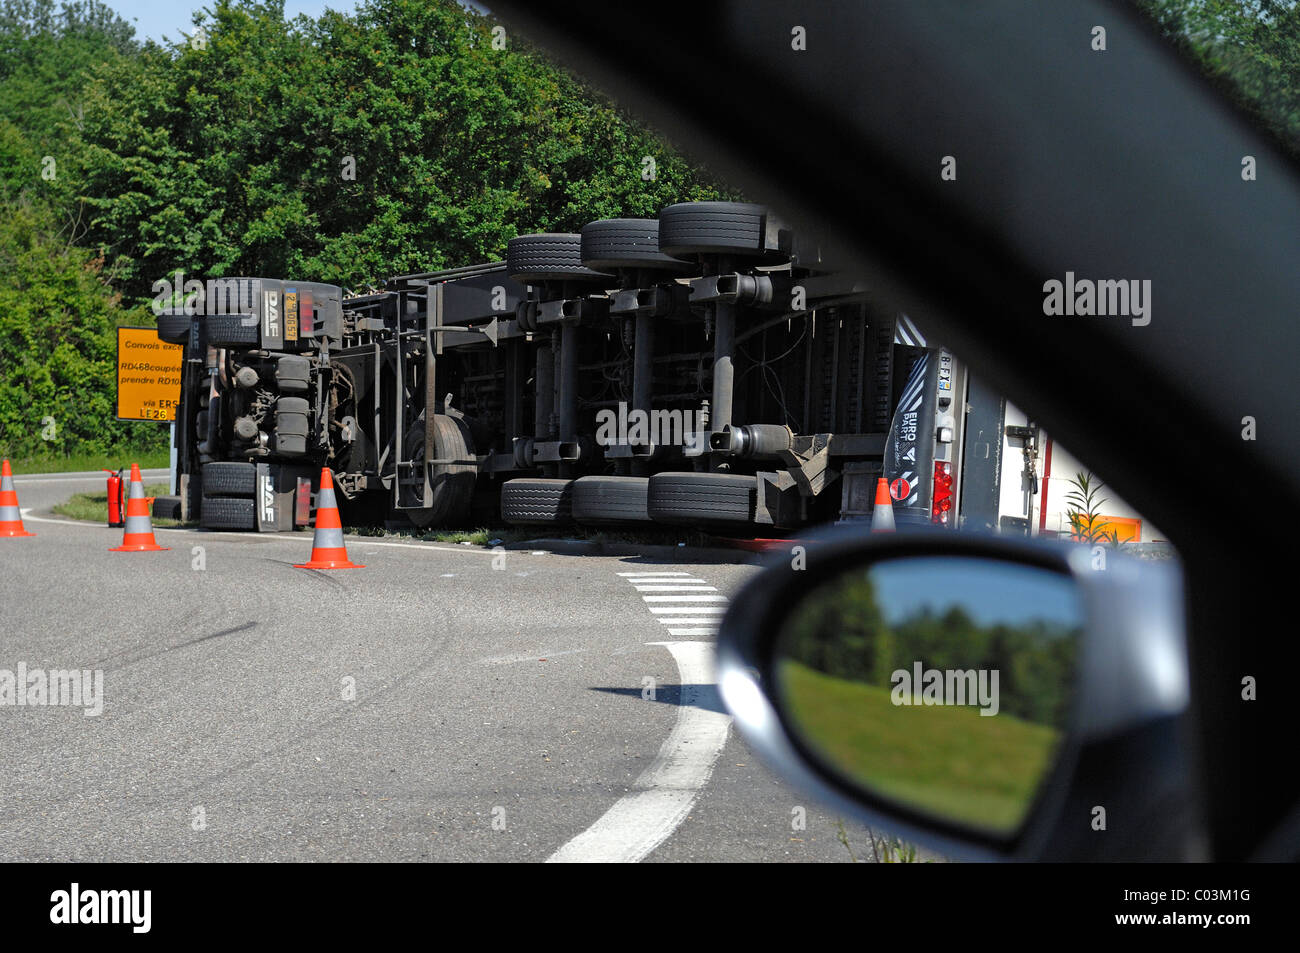 Overturned truck in a roundabout, looking out of a car, Marckolsheim, Alsace, France, Europe - Stock Image